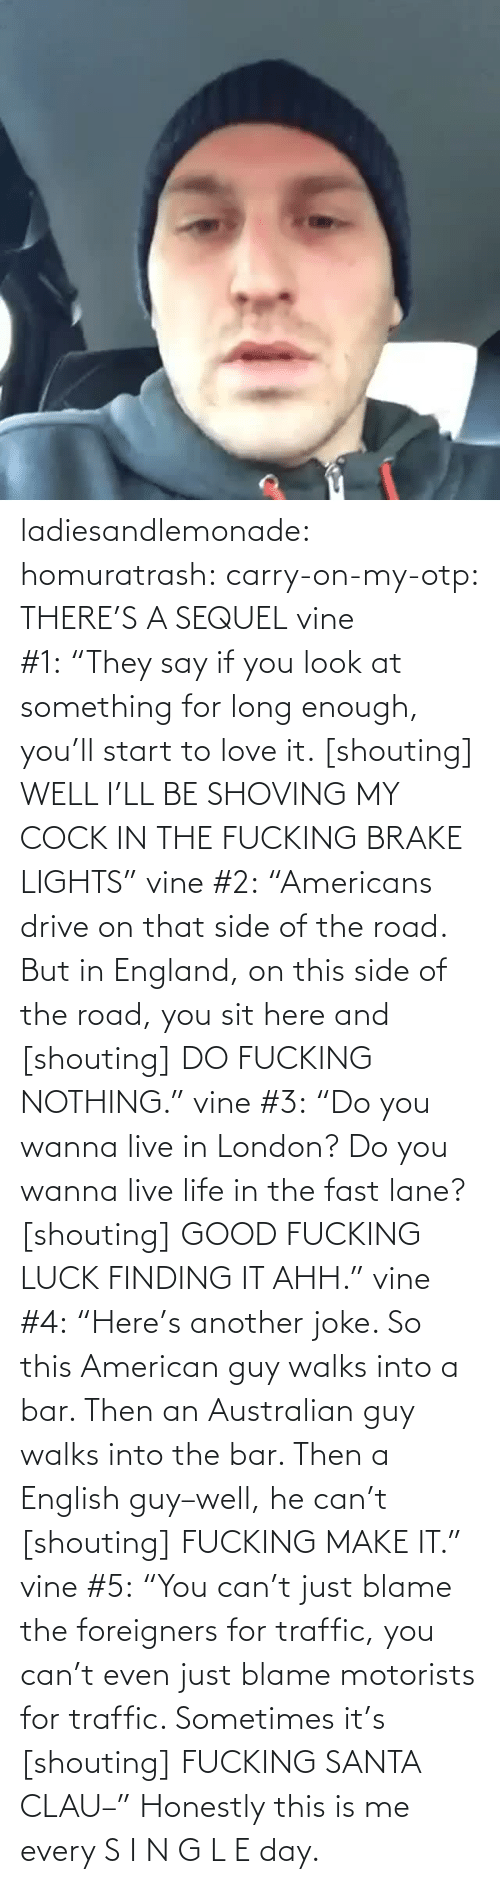 """England, Fucking, and Life: ladiesandlemonade:  homuratrash:  carry-on-my-otp:  THERE'S A SEQUEL  vine #1:""""They say if you look at something for long enough, you'll start to love it. [shouting] WELL I'LL BE SHOVING MY COCK IN THE FUCKING BRAKE LIGHTS"""" vine #2:""""Americans drive on that side of the road. But in England, on this side of the road, you sit here and [shouting] DO FUCKING NOTHING."""" vine #3:""""Do you wanna live in London? Do you wanna live life in the fast lane? [shouting] GOOD FUCKING LUCK FINDING IT AHH."""" vine #4:""""Here's another joke. So this American guy walks into a bar. Then an Australian guy walks into the bar. Then a English guy–well, he can't [shouting] FUCKING MAKE IT."""" vine #5:""""You can't just blame the foreigners for traffic, you can't even just blame motorists for traffic. Sometimes it's [shouting] FUCKING SANTA CLAU–""""  Honestly this is me every S I N G L E day."""